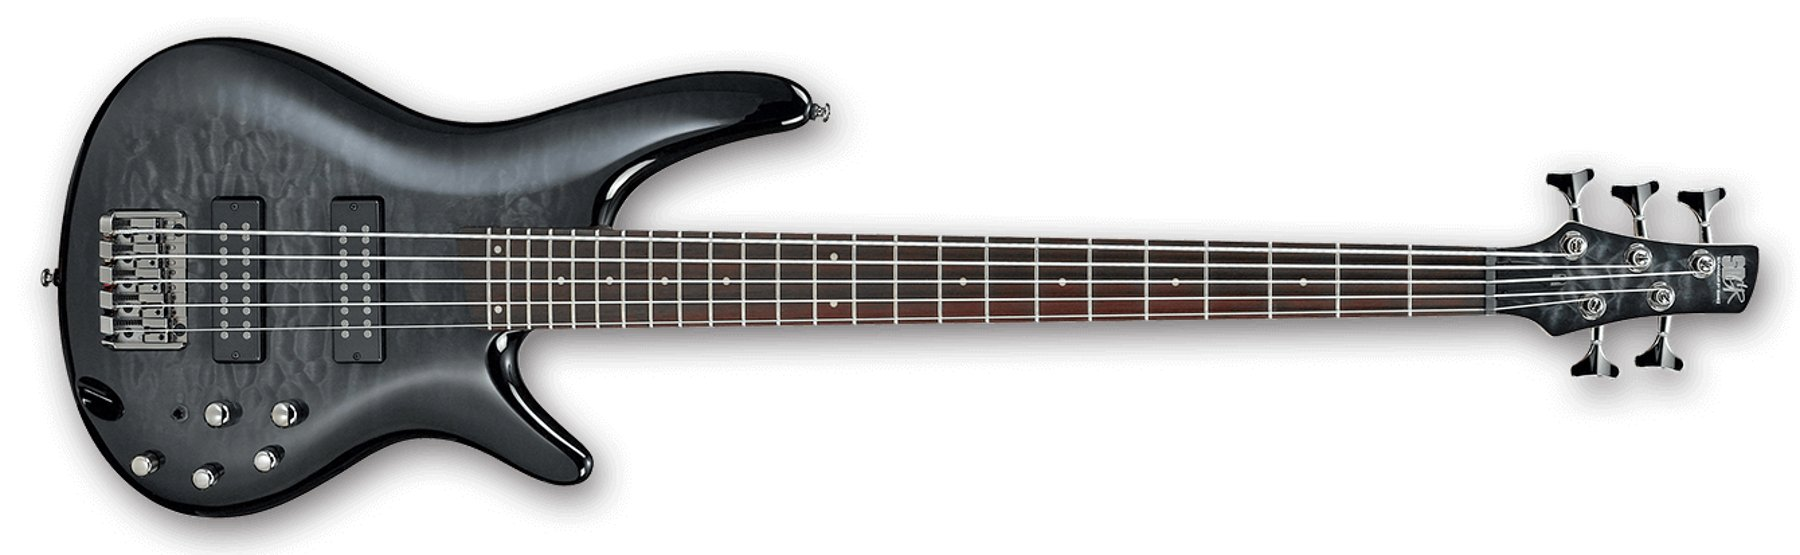 ibanez sr405eqm 5 string bass guitar 24 fret rosewood fretboard with white dot inlay full. Black Bedroom Furniture Sets. Home Design Ideas